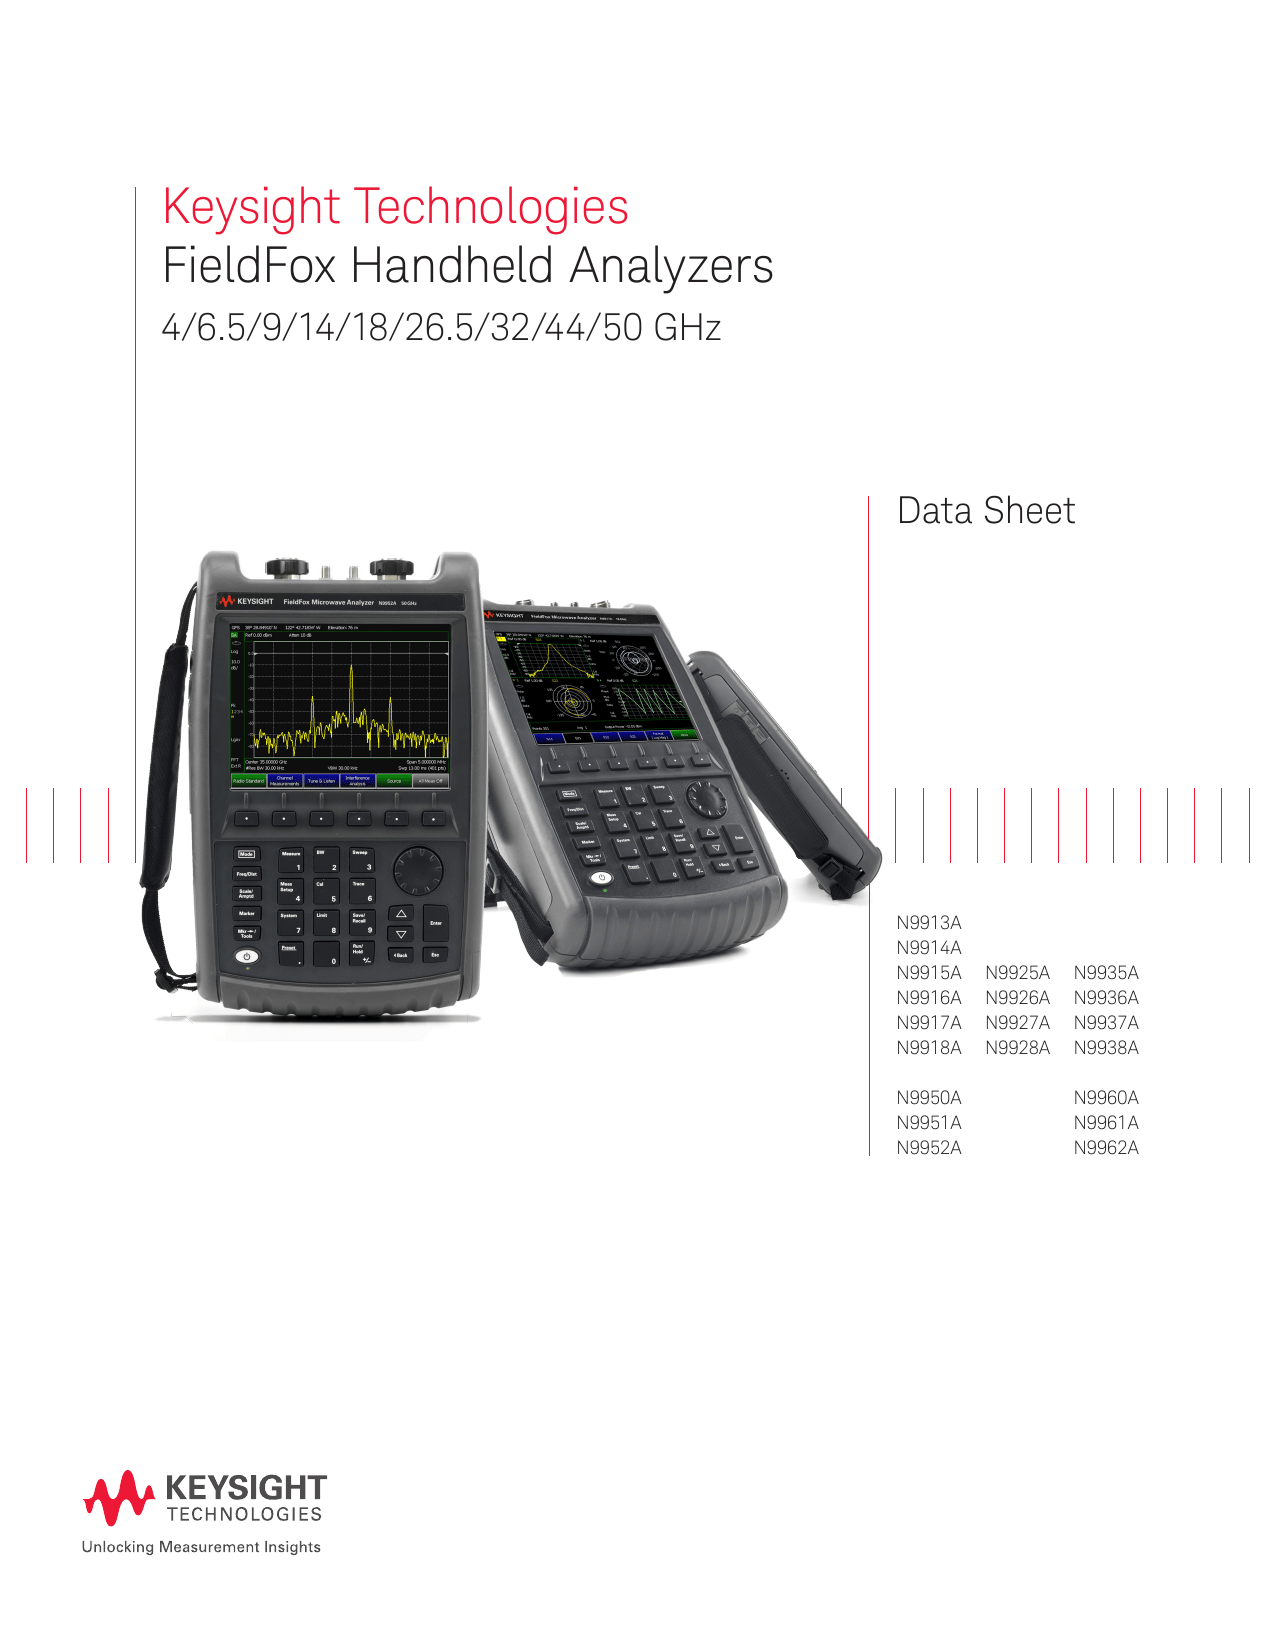 KEYSIGHT N991XA ANALYZER WINDOWS 8 X64 DRIVER